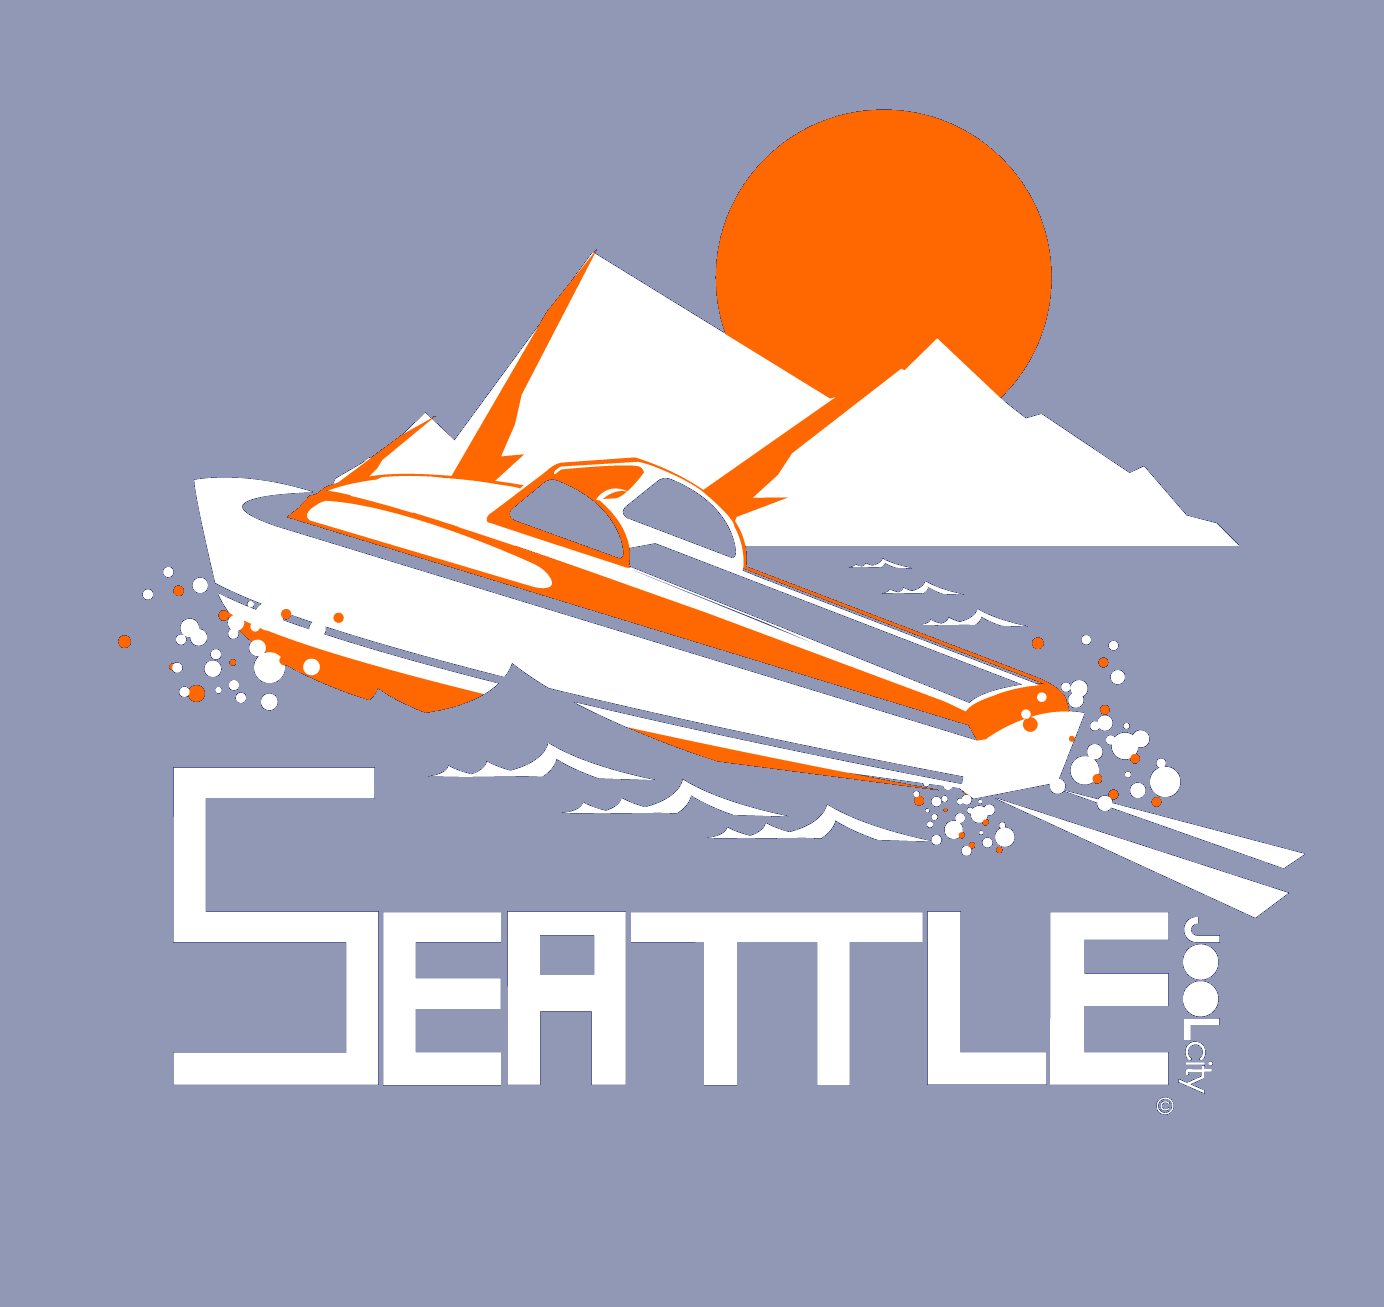 Seattle Cruiser Cruising Short-Sleeve T-Shirt T-Shirt  designed by JOOLcity